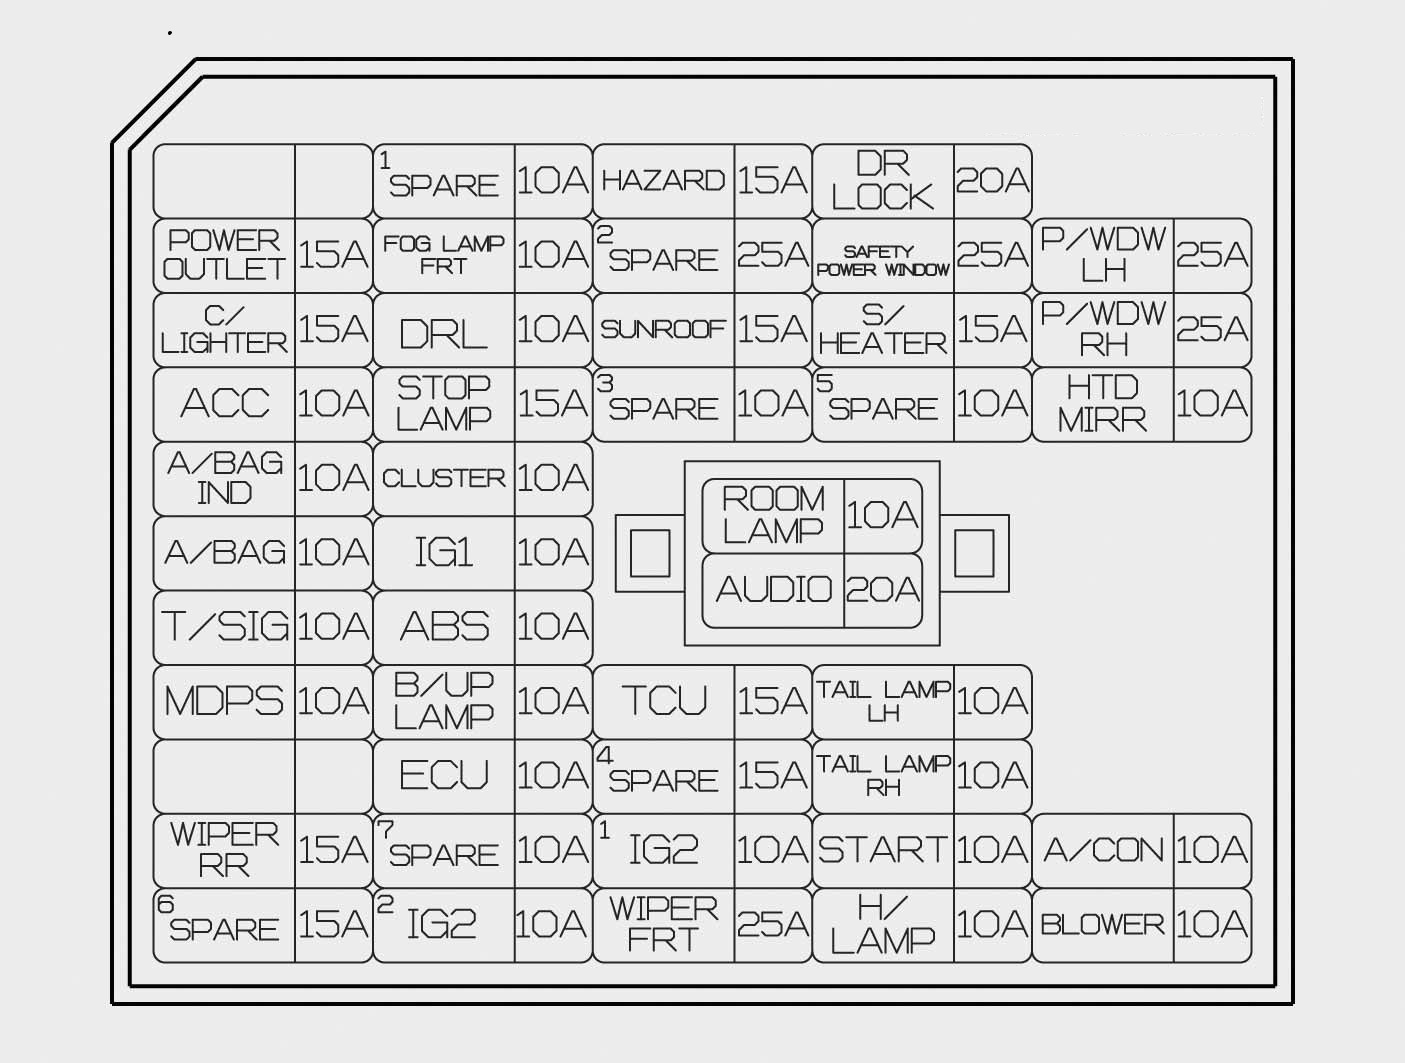 small resolution of lexus lx470 fuse box diagram wiring library diagram as well vanagon fuse diagram moreover 1981 honda cx500 wiring